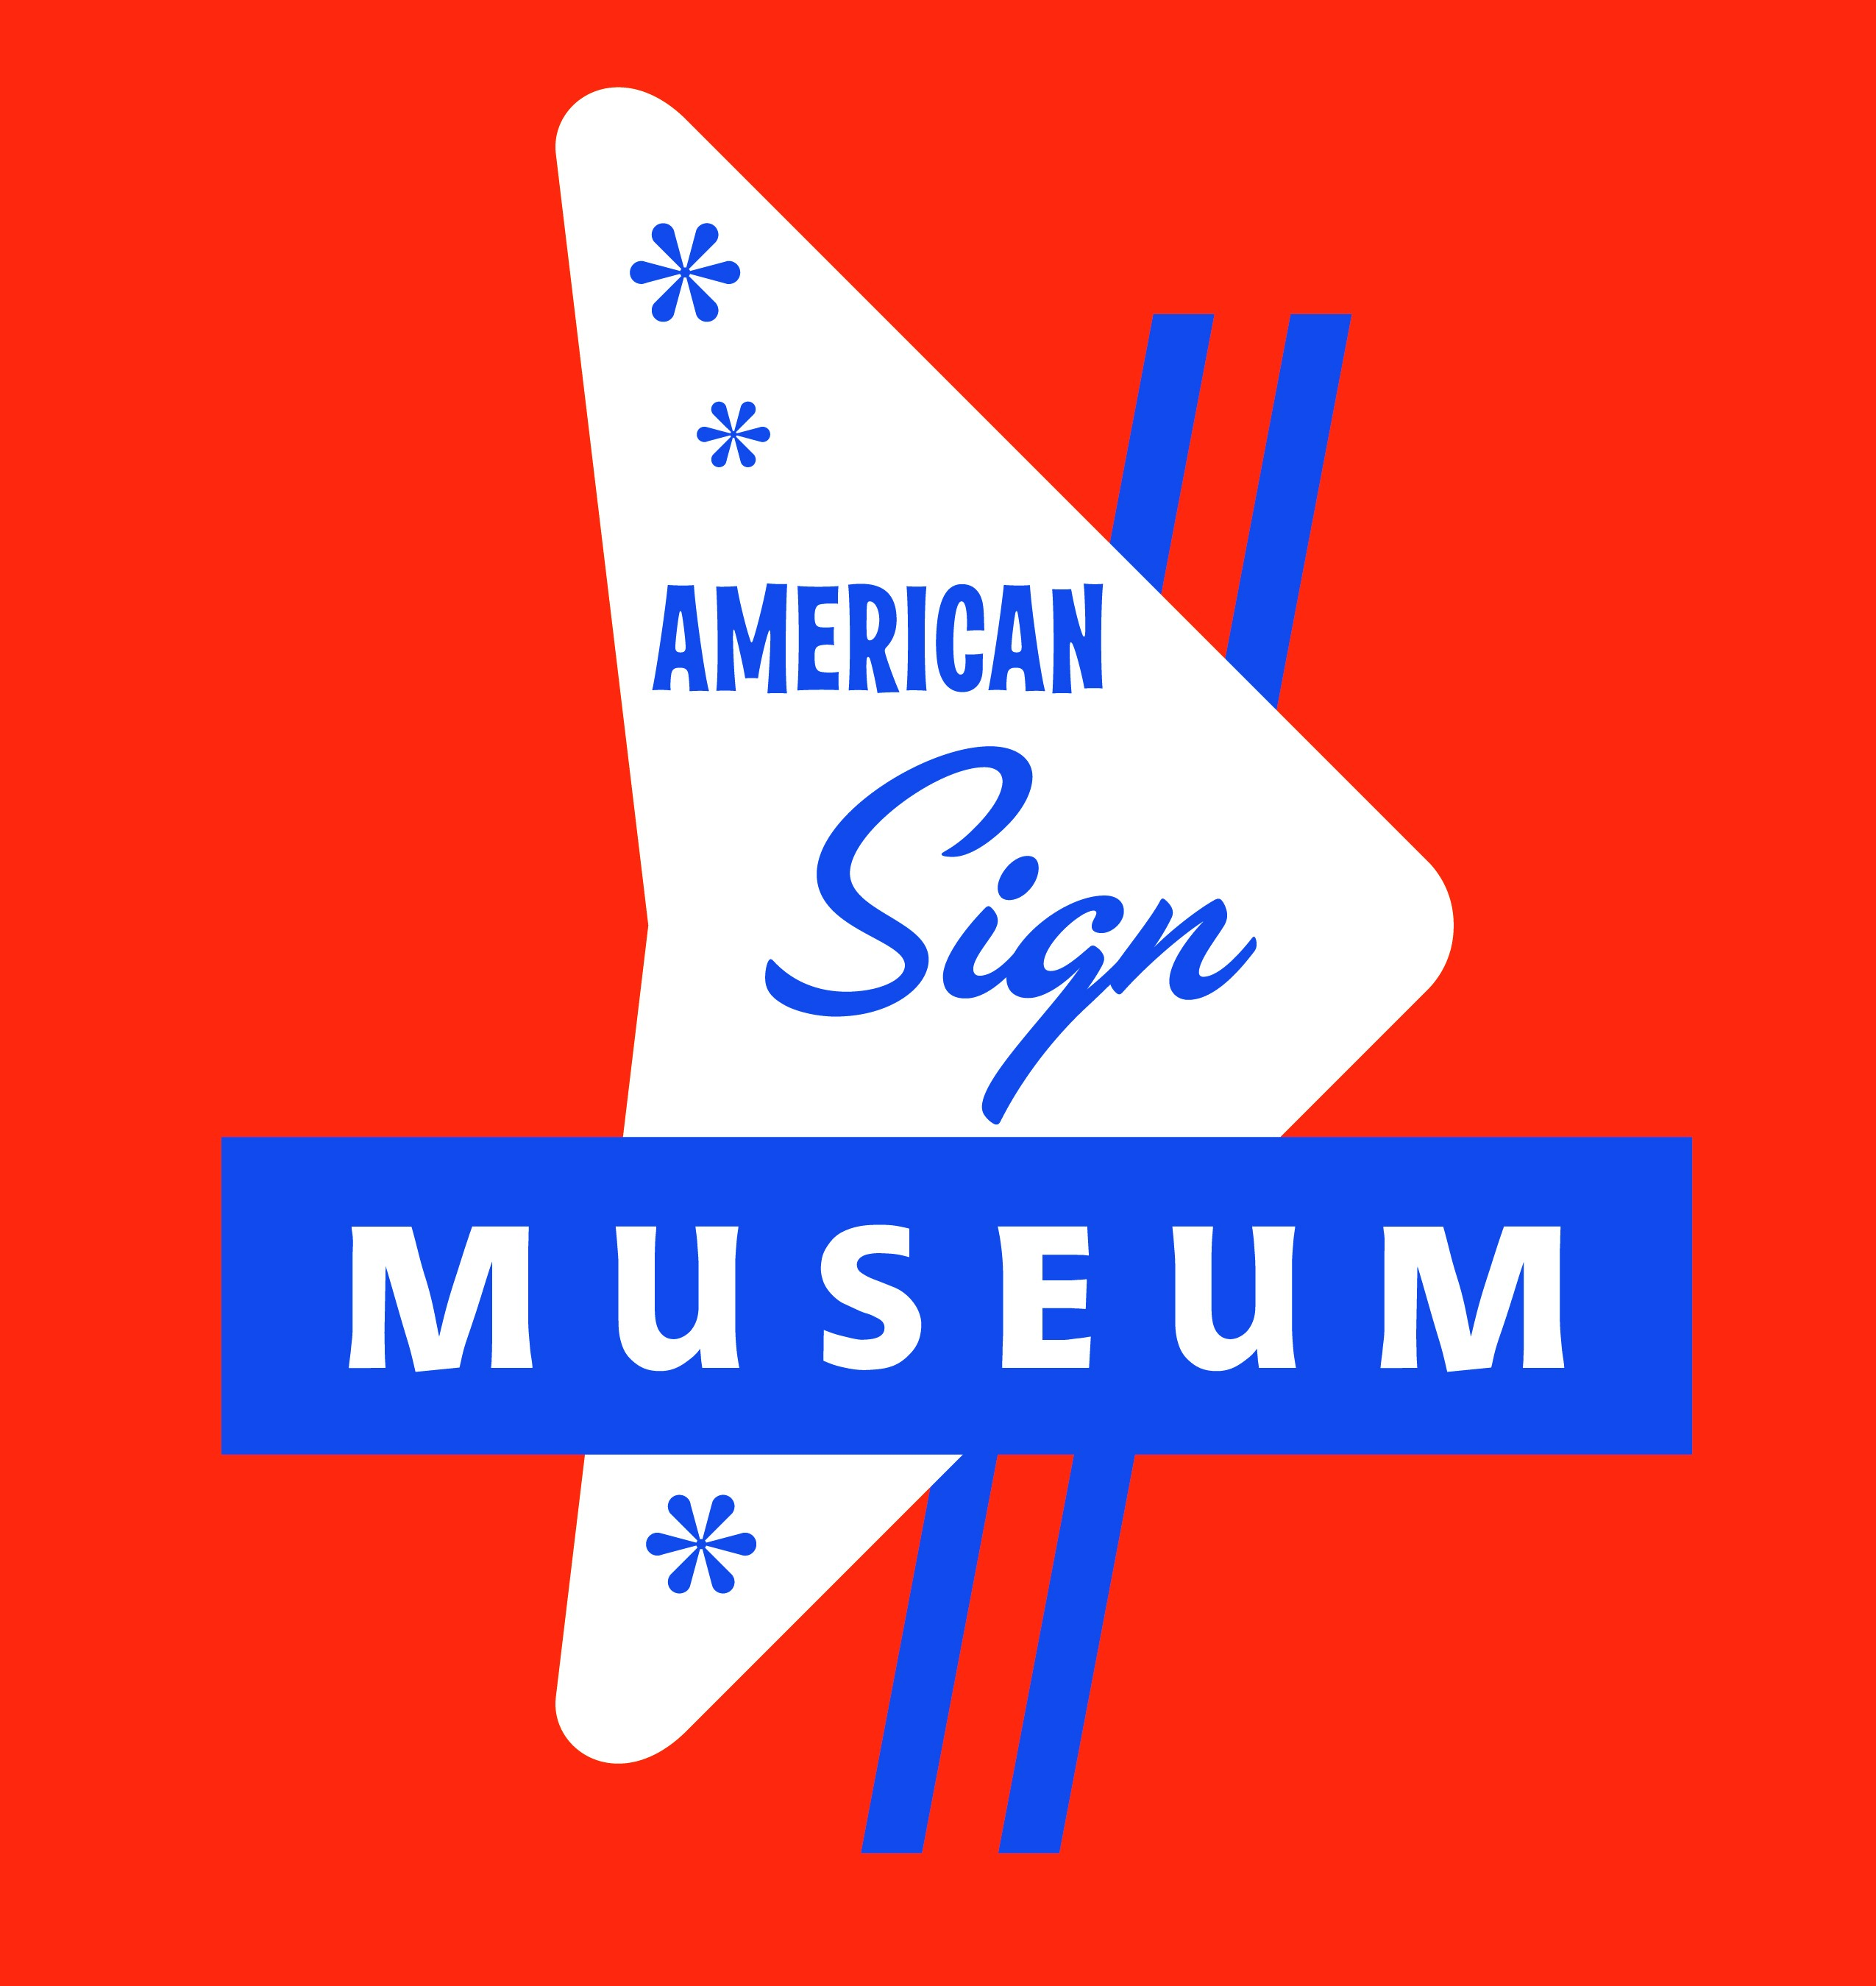 American Sign Musuem - Use